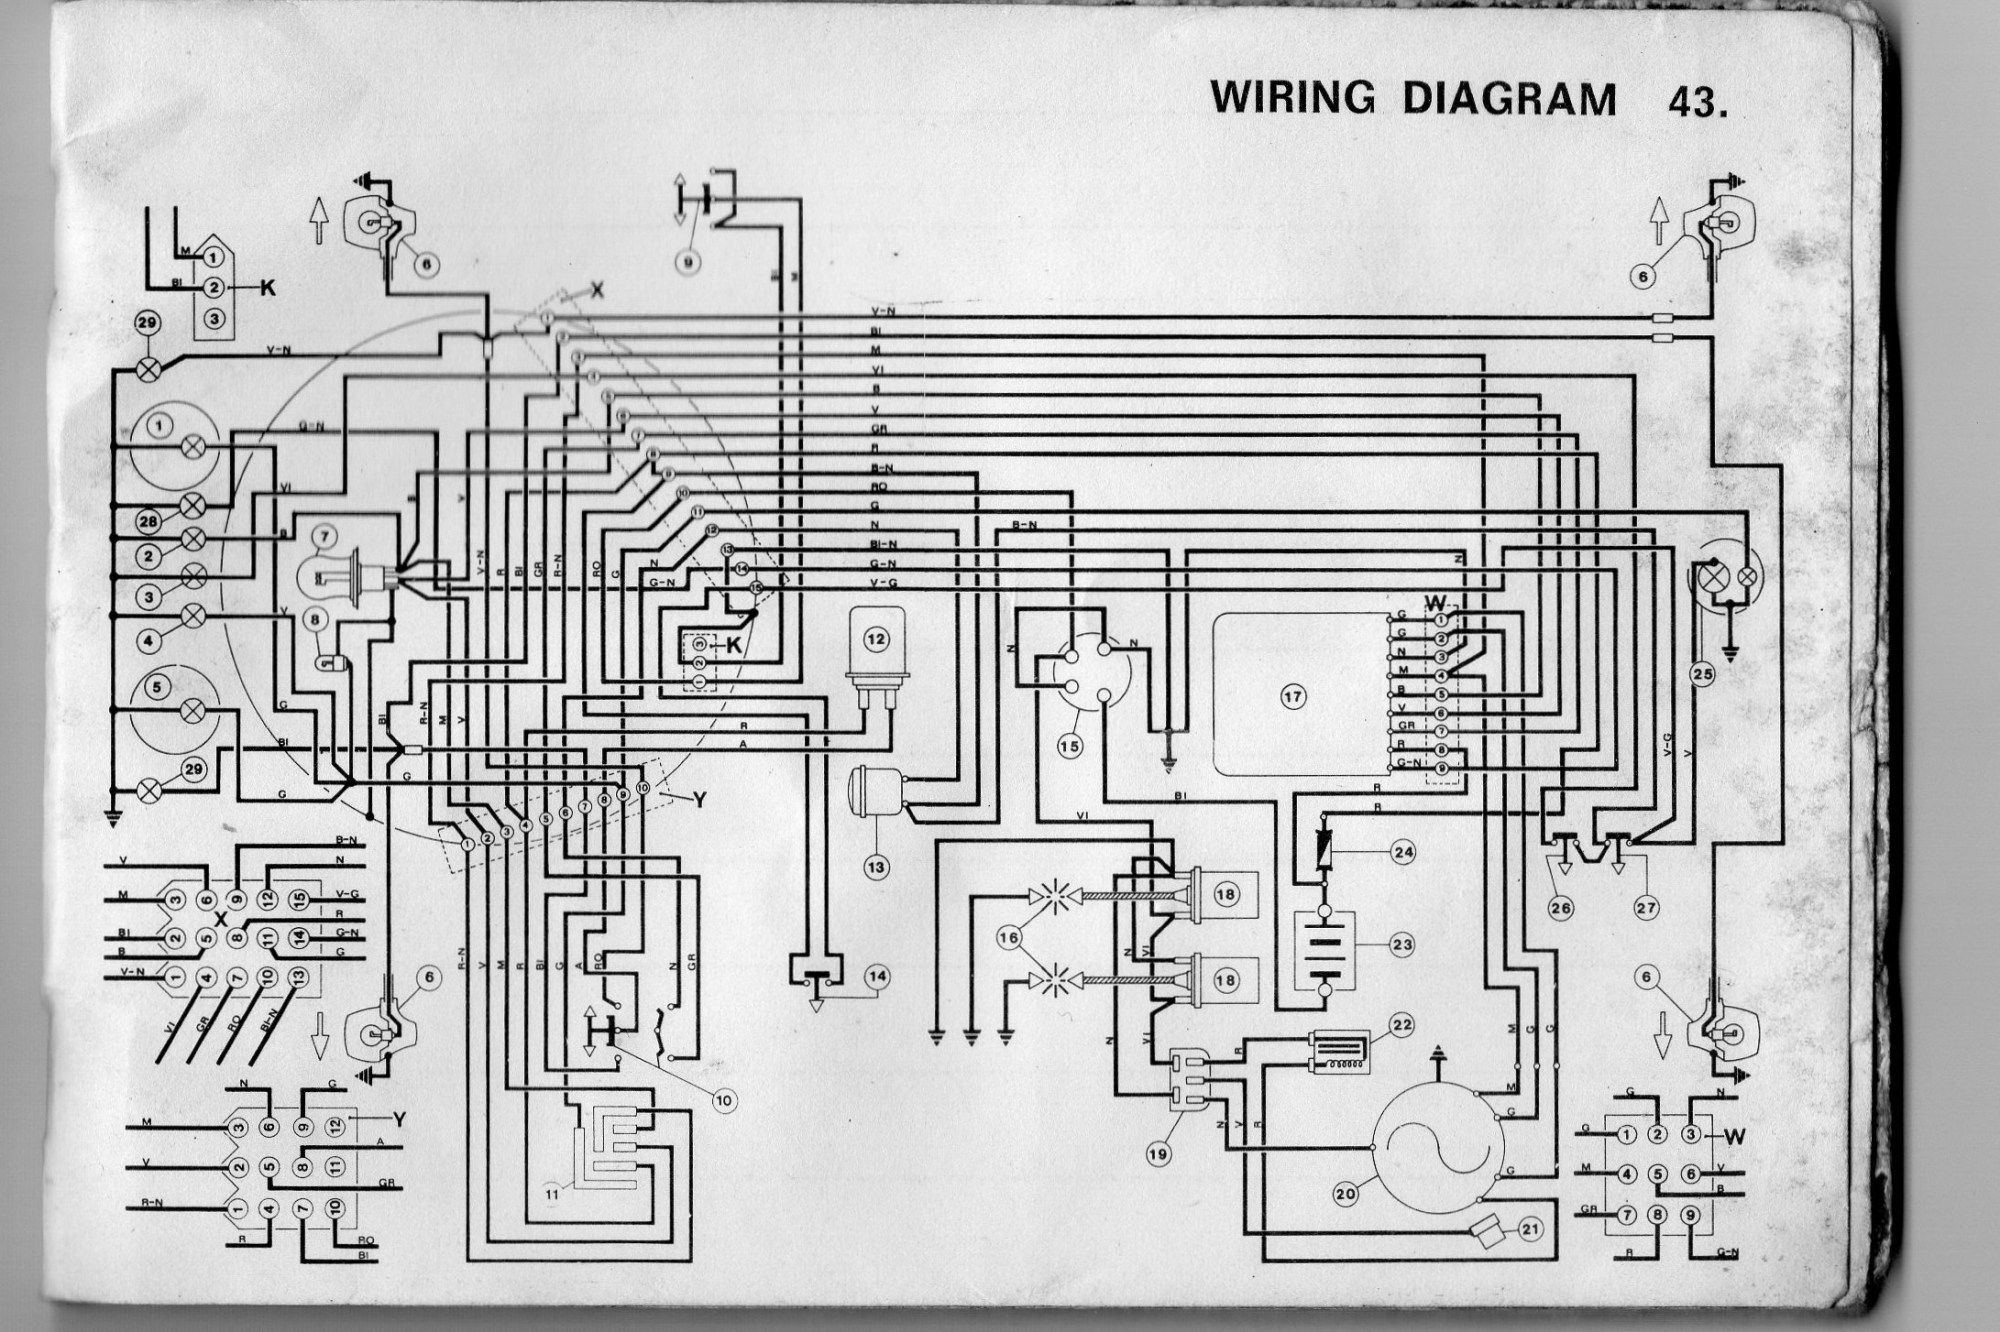 hight resolution of benelli 250 wiring diagram wiring diagram fascinating benelli 250 wiring diagram